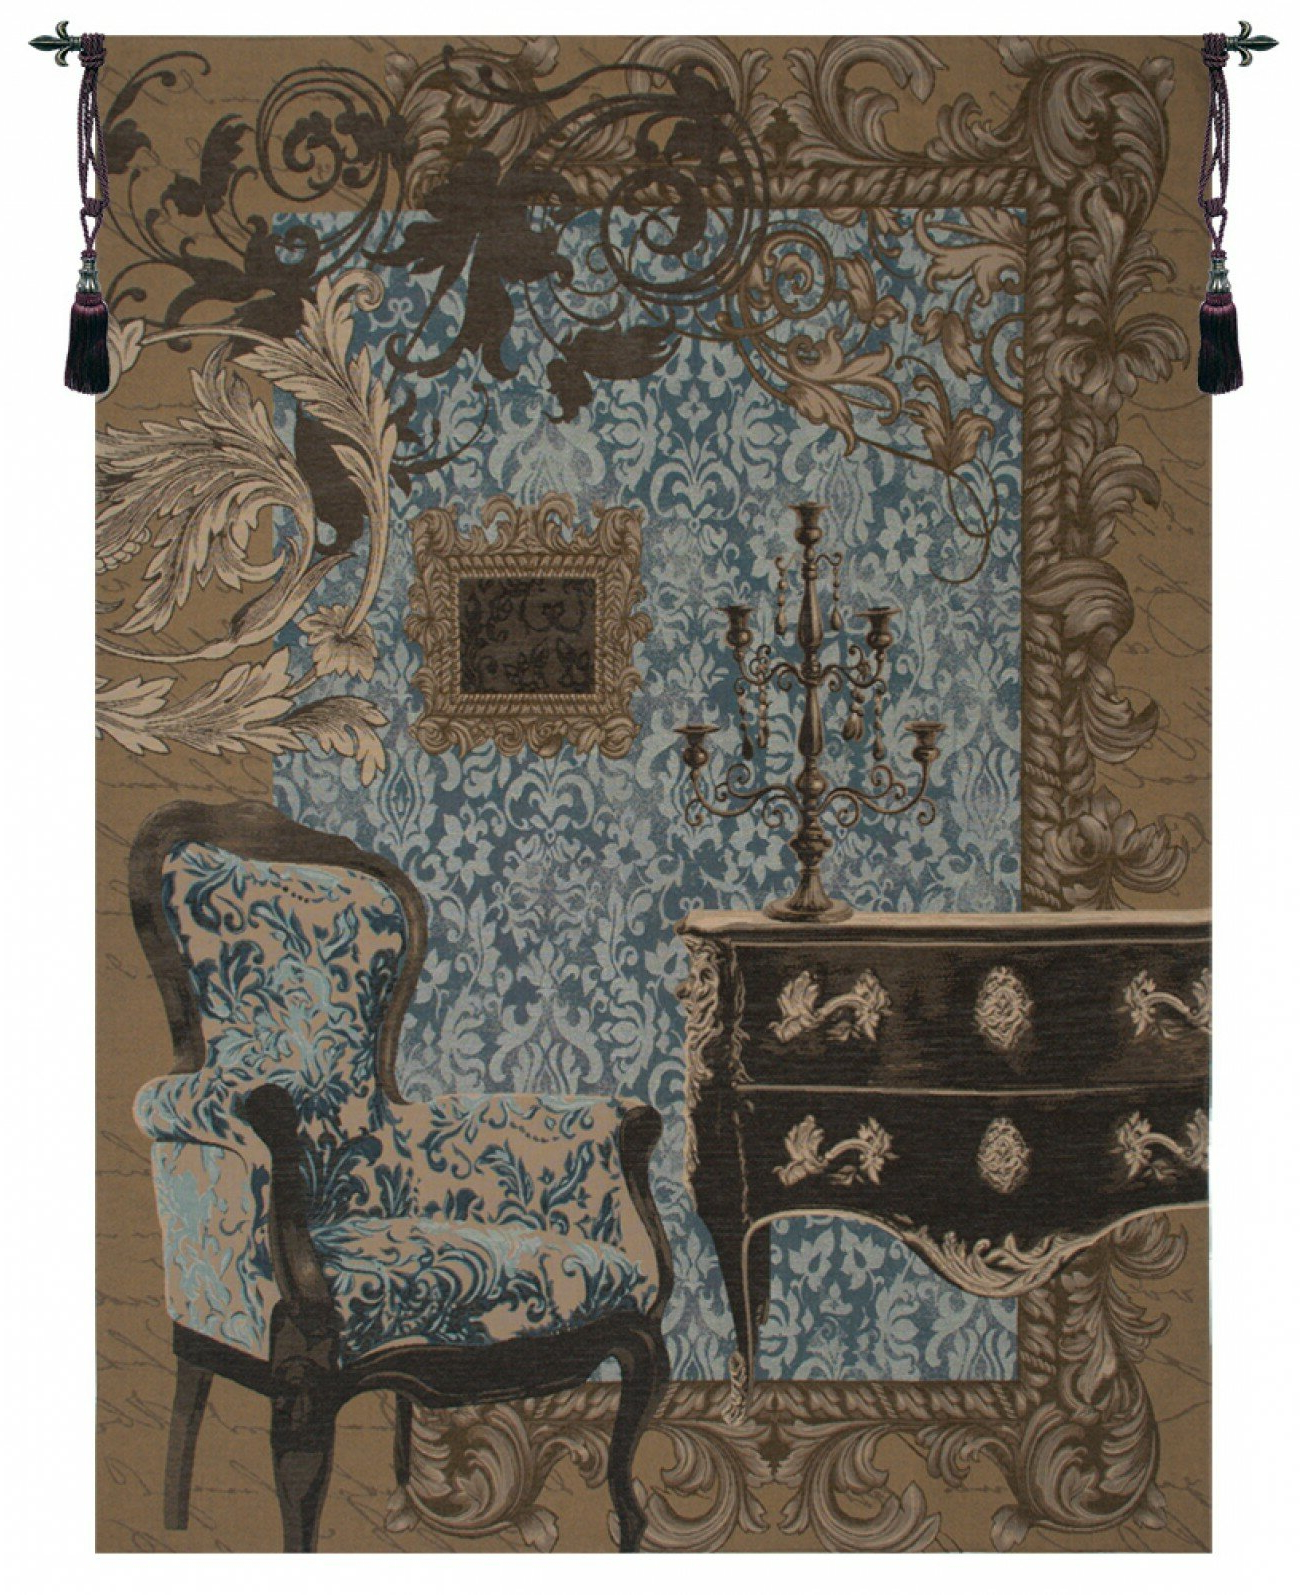 Best And Newest Mobilier Louis Xvi European Tapestry Inside Blended Fabric Gallanteries European Wall Hangings (View 2 of 20)